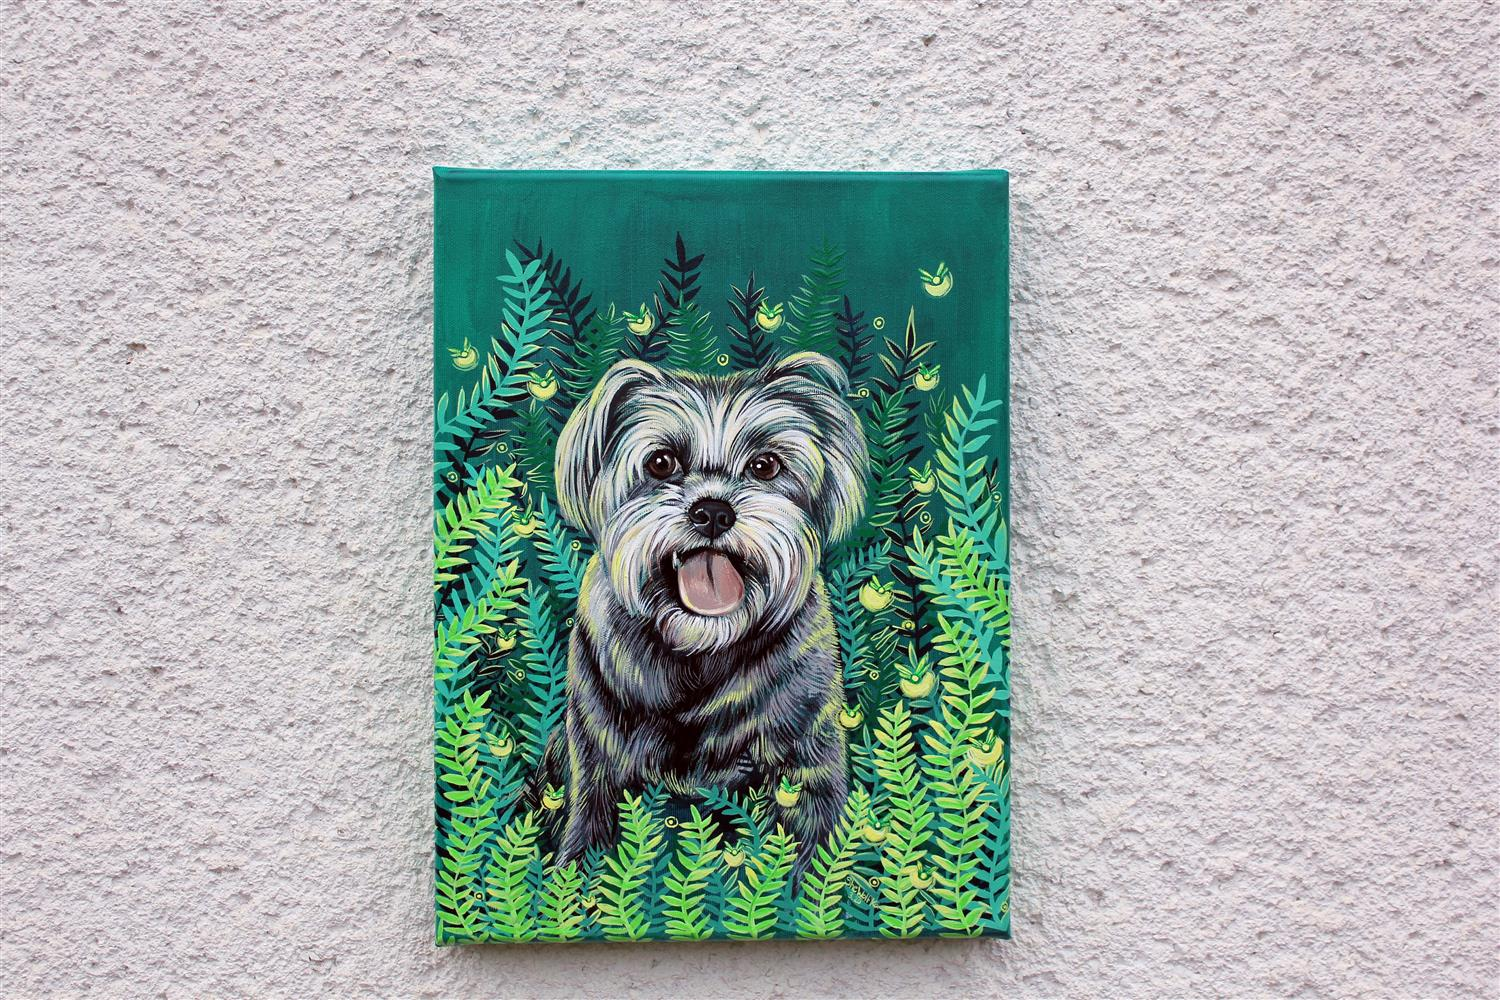 canvas art, dog portrait, animal portrait, cat painting, cute dog art, dog lover gift, acrylic painting